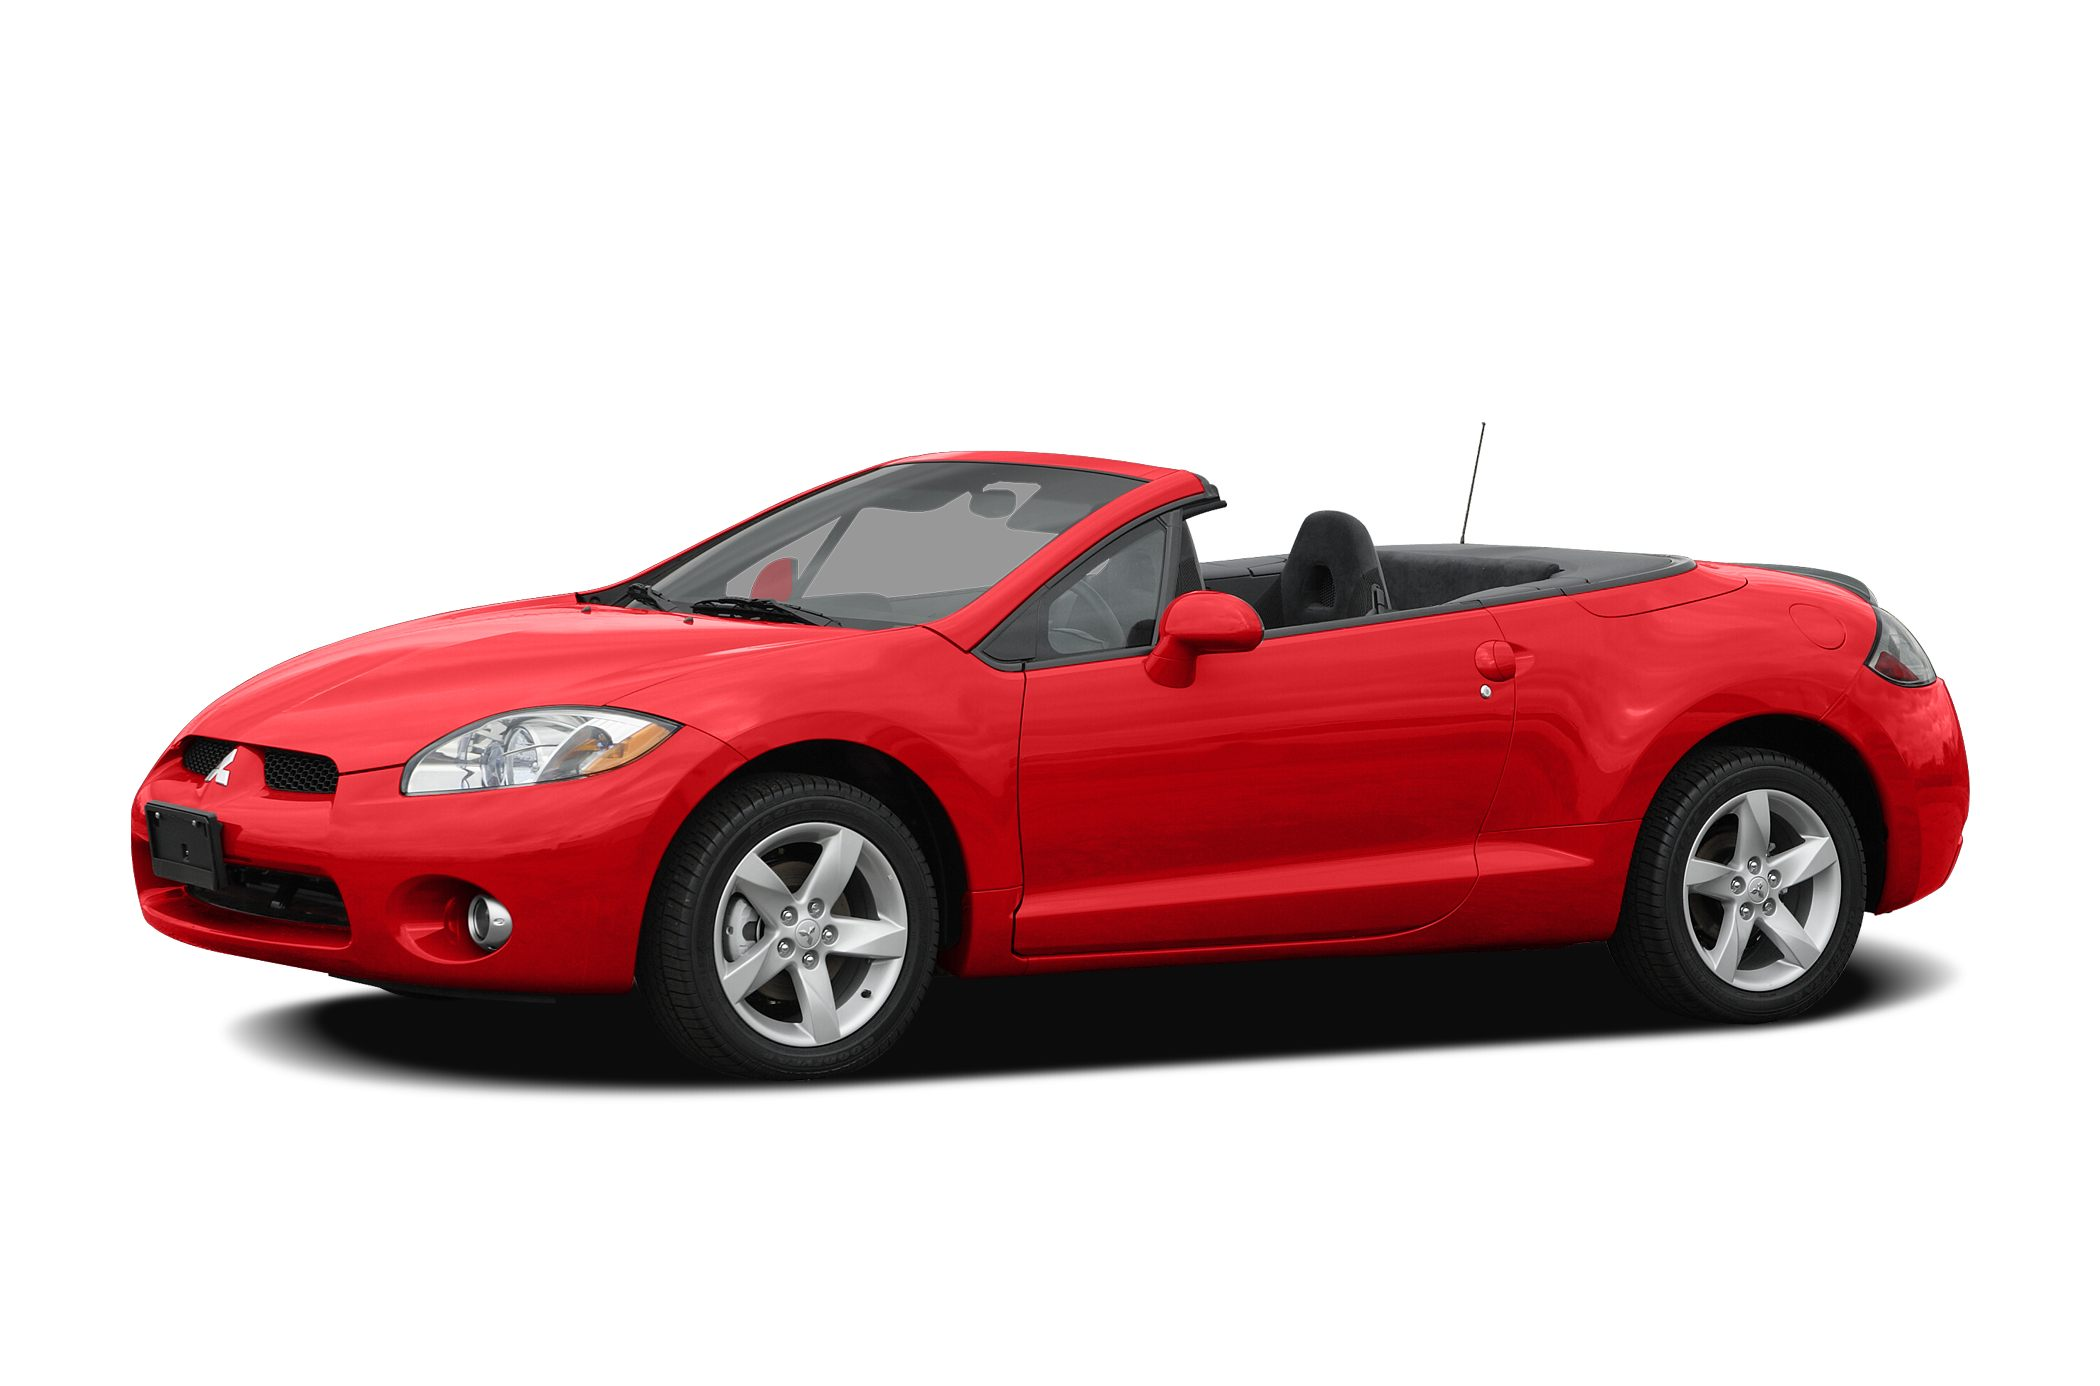 2007 Mitsubishi Eclipse Spyder GT Convertible for sale in Bonita Springs for $8,995 with 84,186 miles